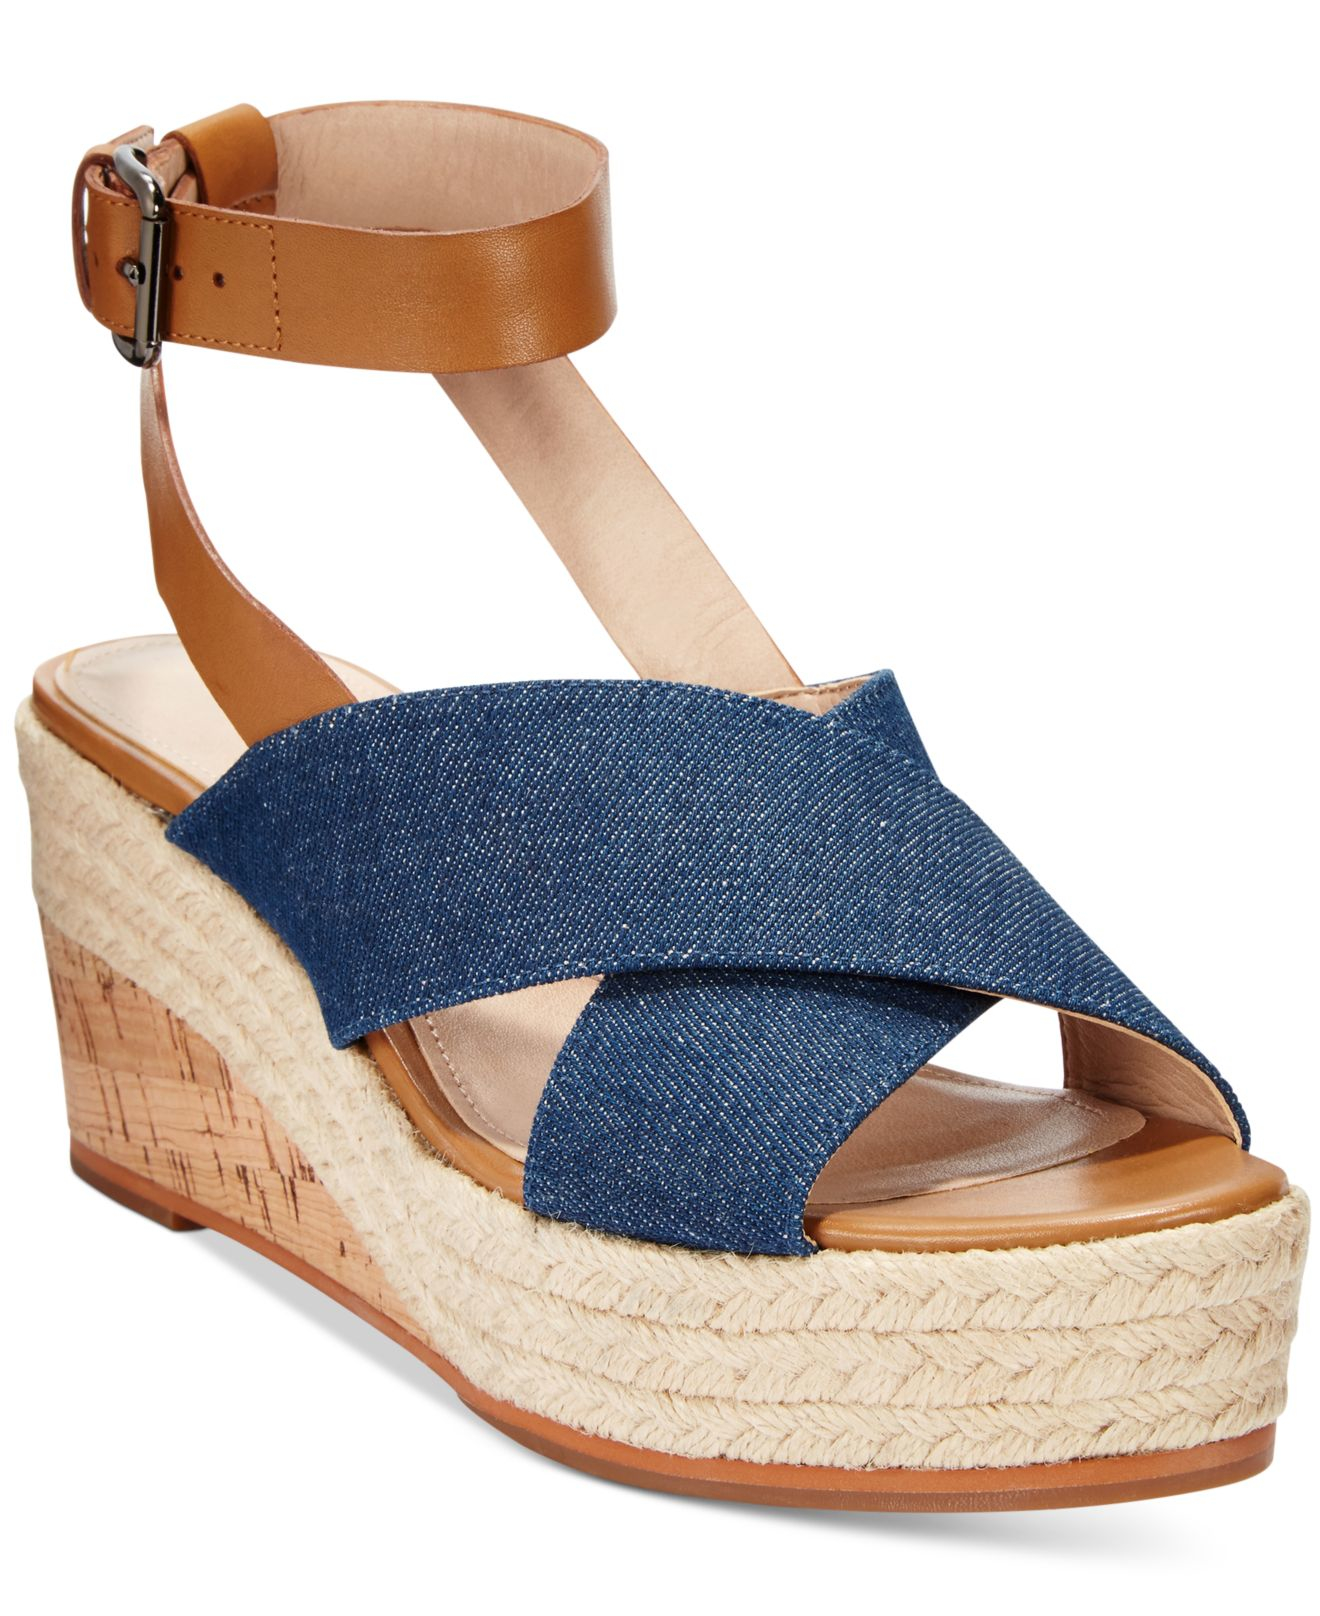 46047efd0a7d Lyst - French Connection Liora Platform Wedge Sandals in Blue